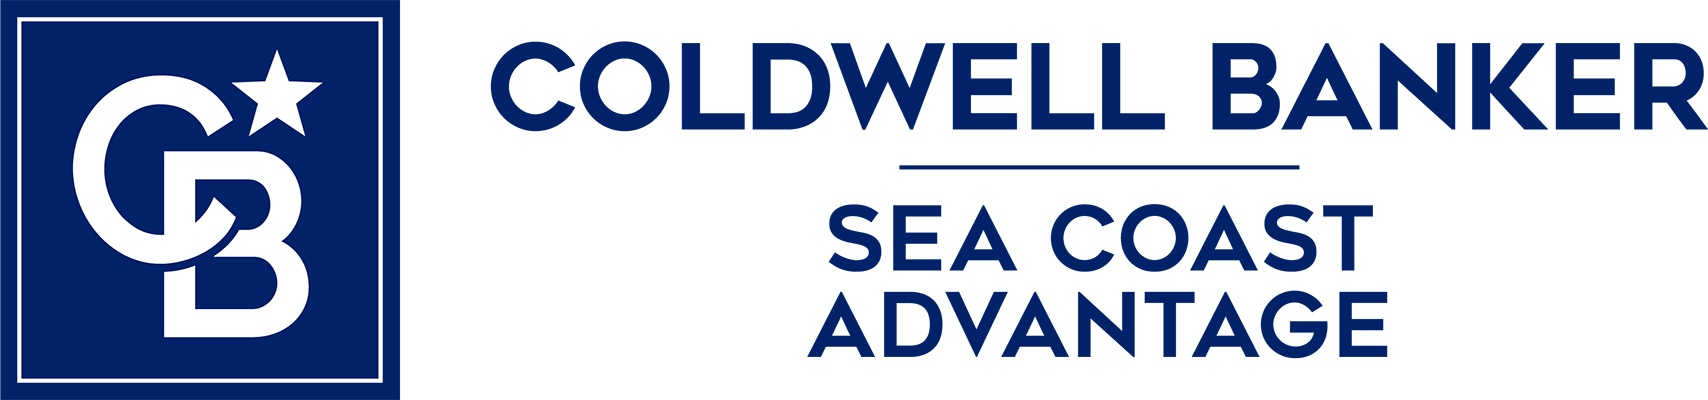 Michael Bolick - Coldwell Banker Sea Coast Advantage Realty